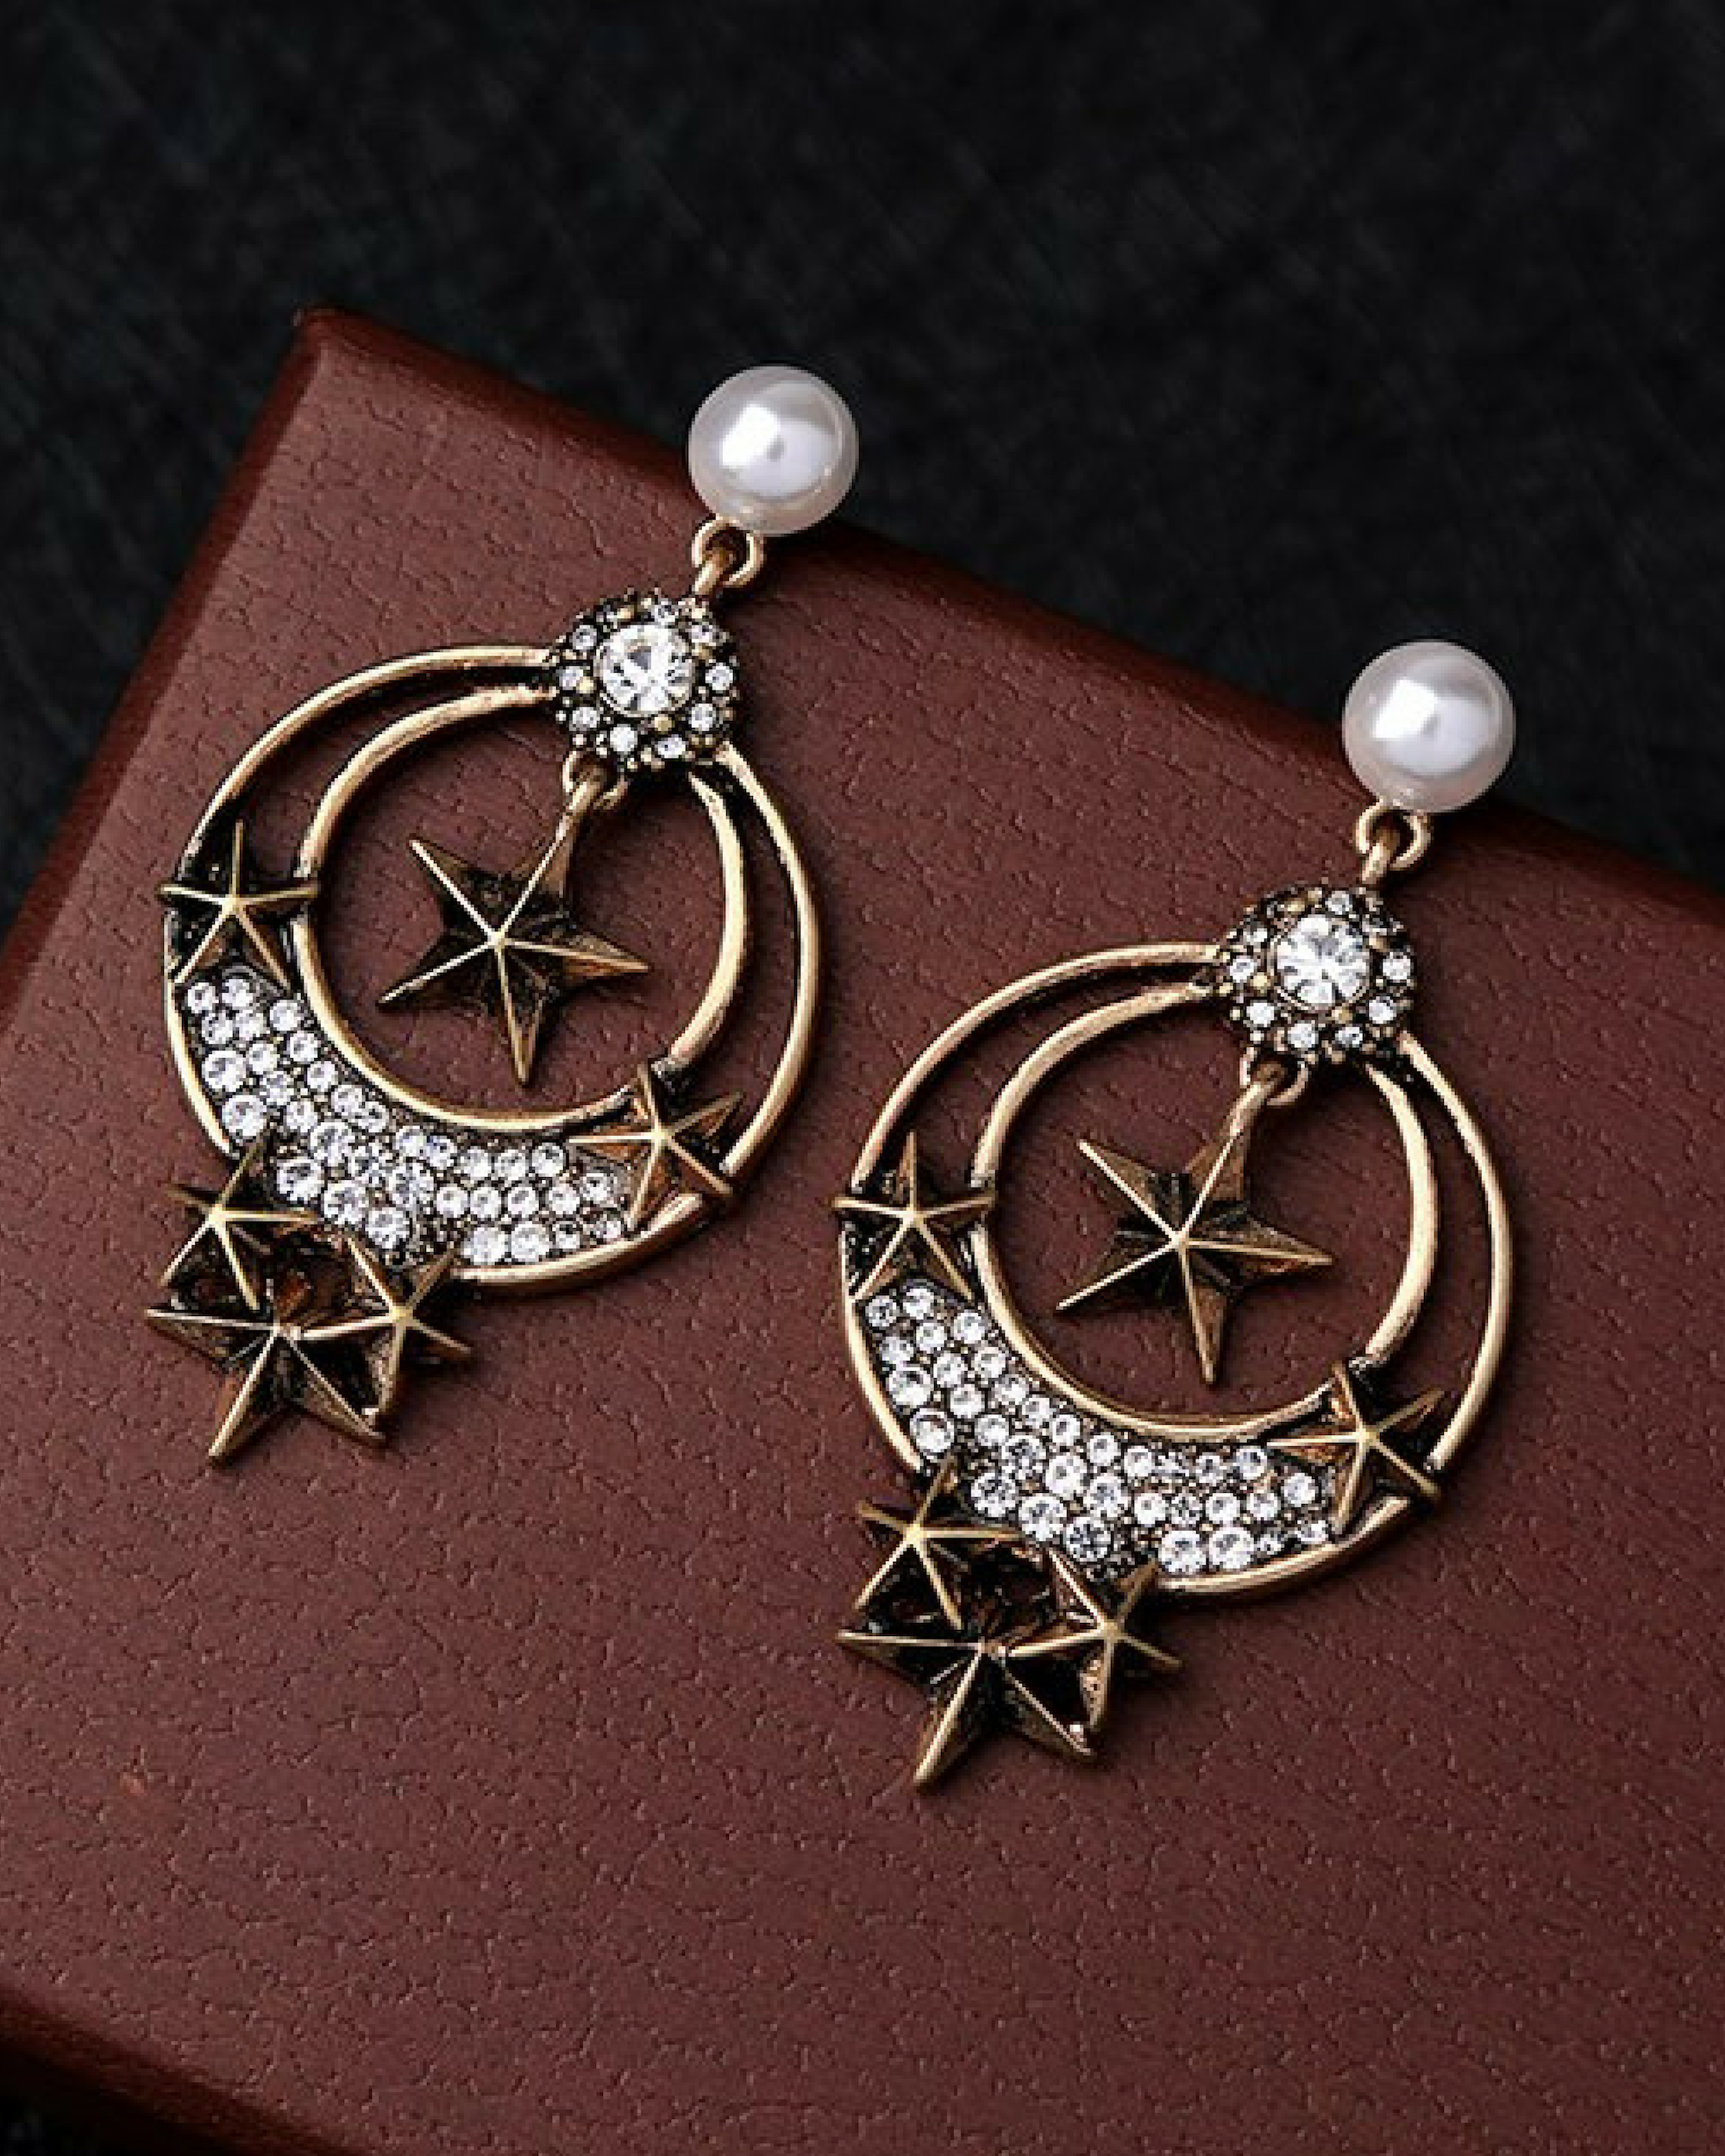 Rhinestone dangling antique earrings